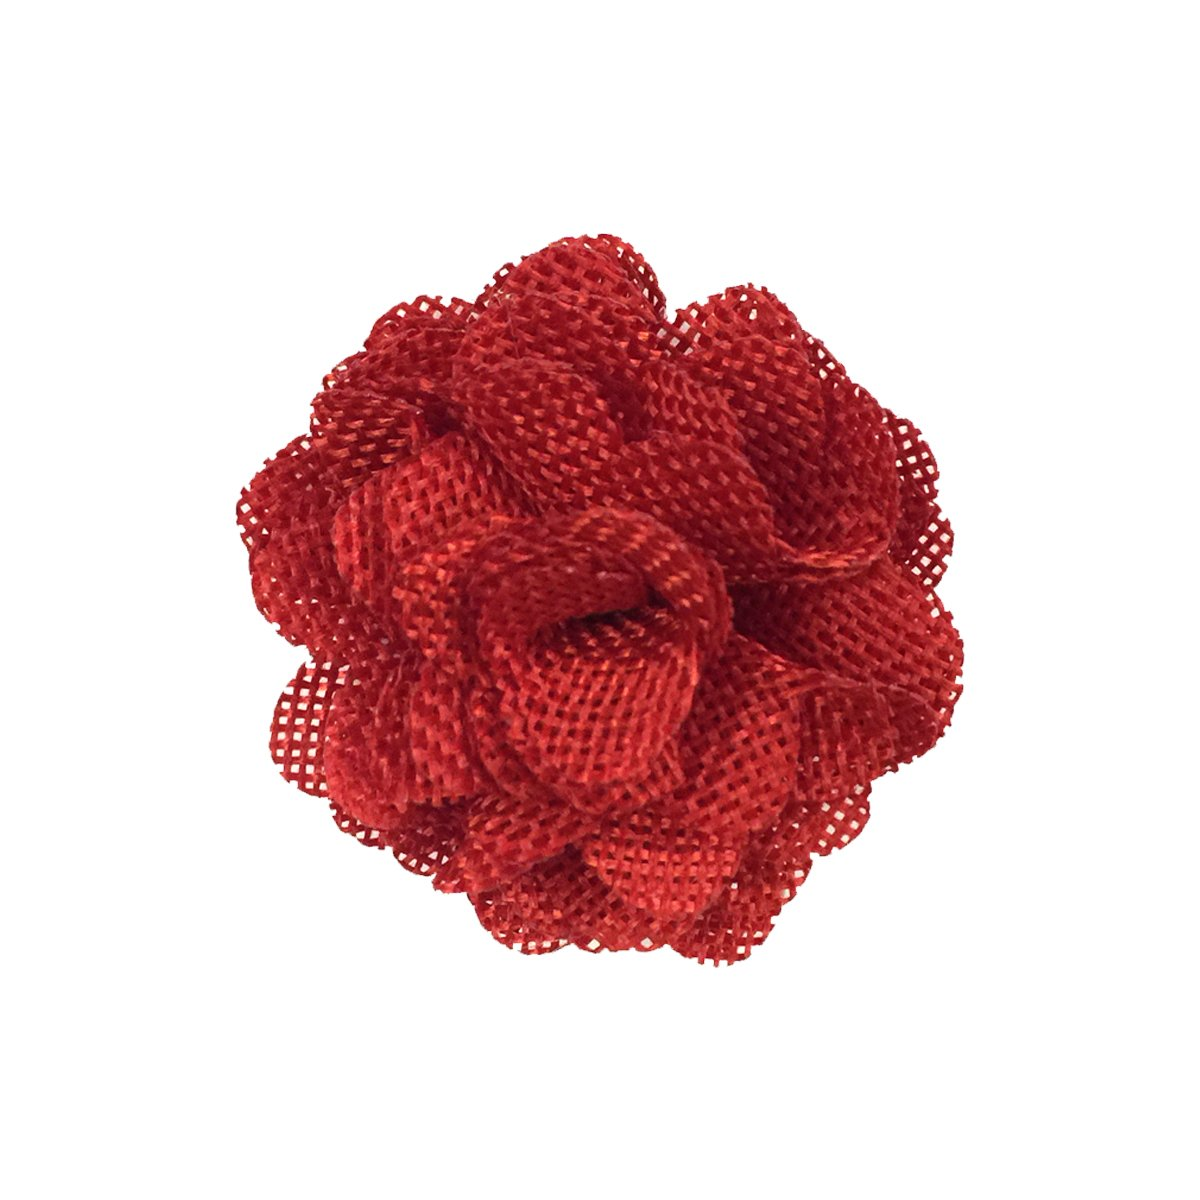 Wrapables Shabby Chic Burlap Rose Flower (Set of 20), Red